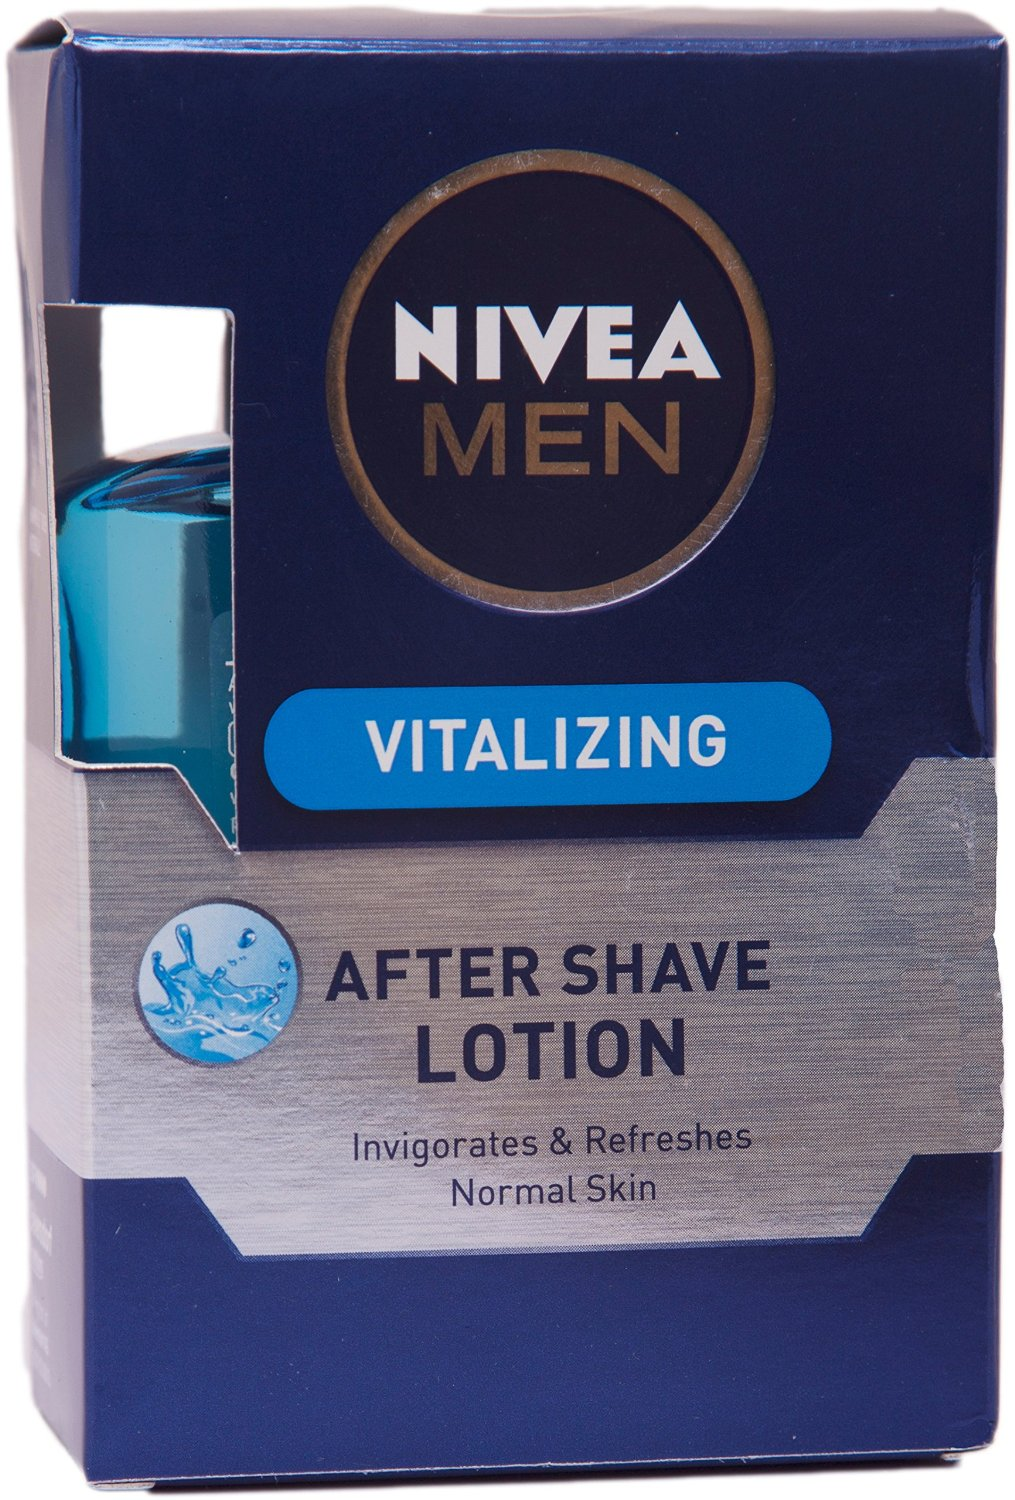 All you need to know before buying an after shave product for men in India